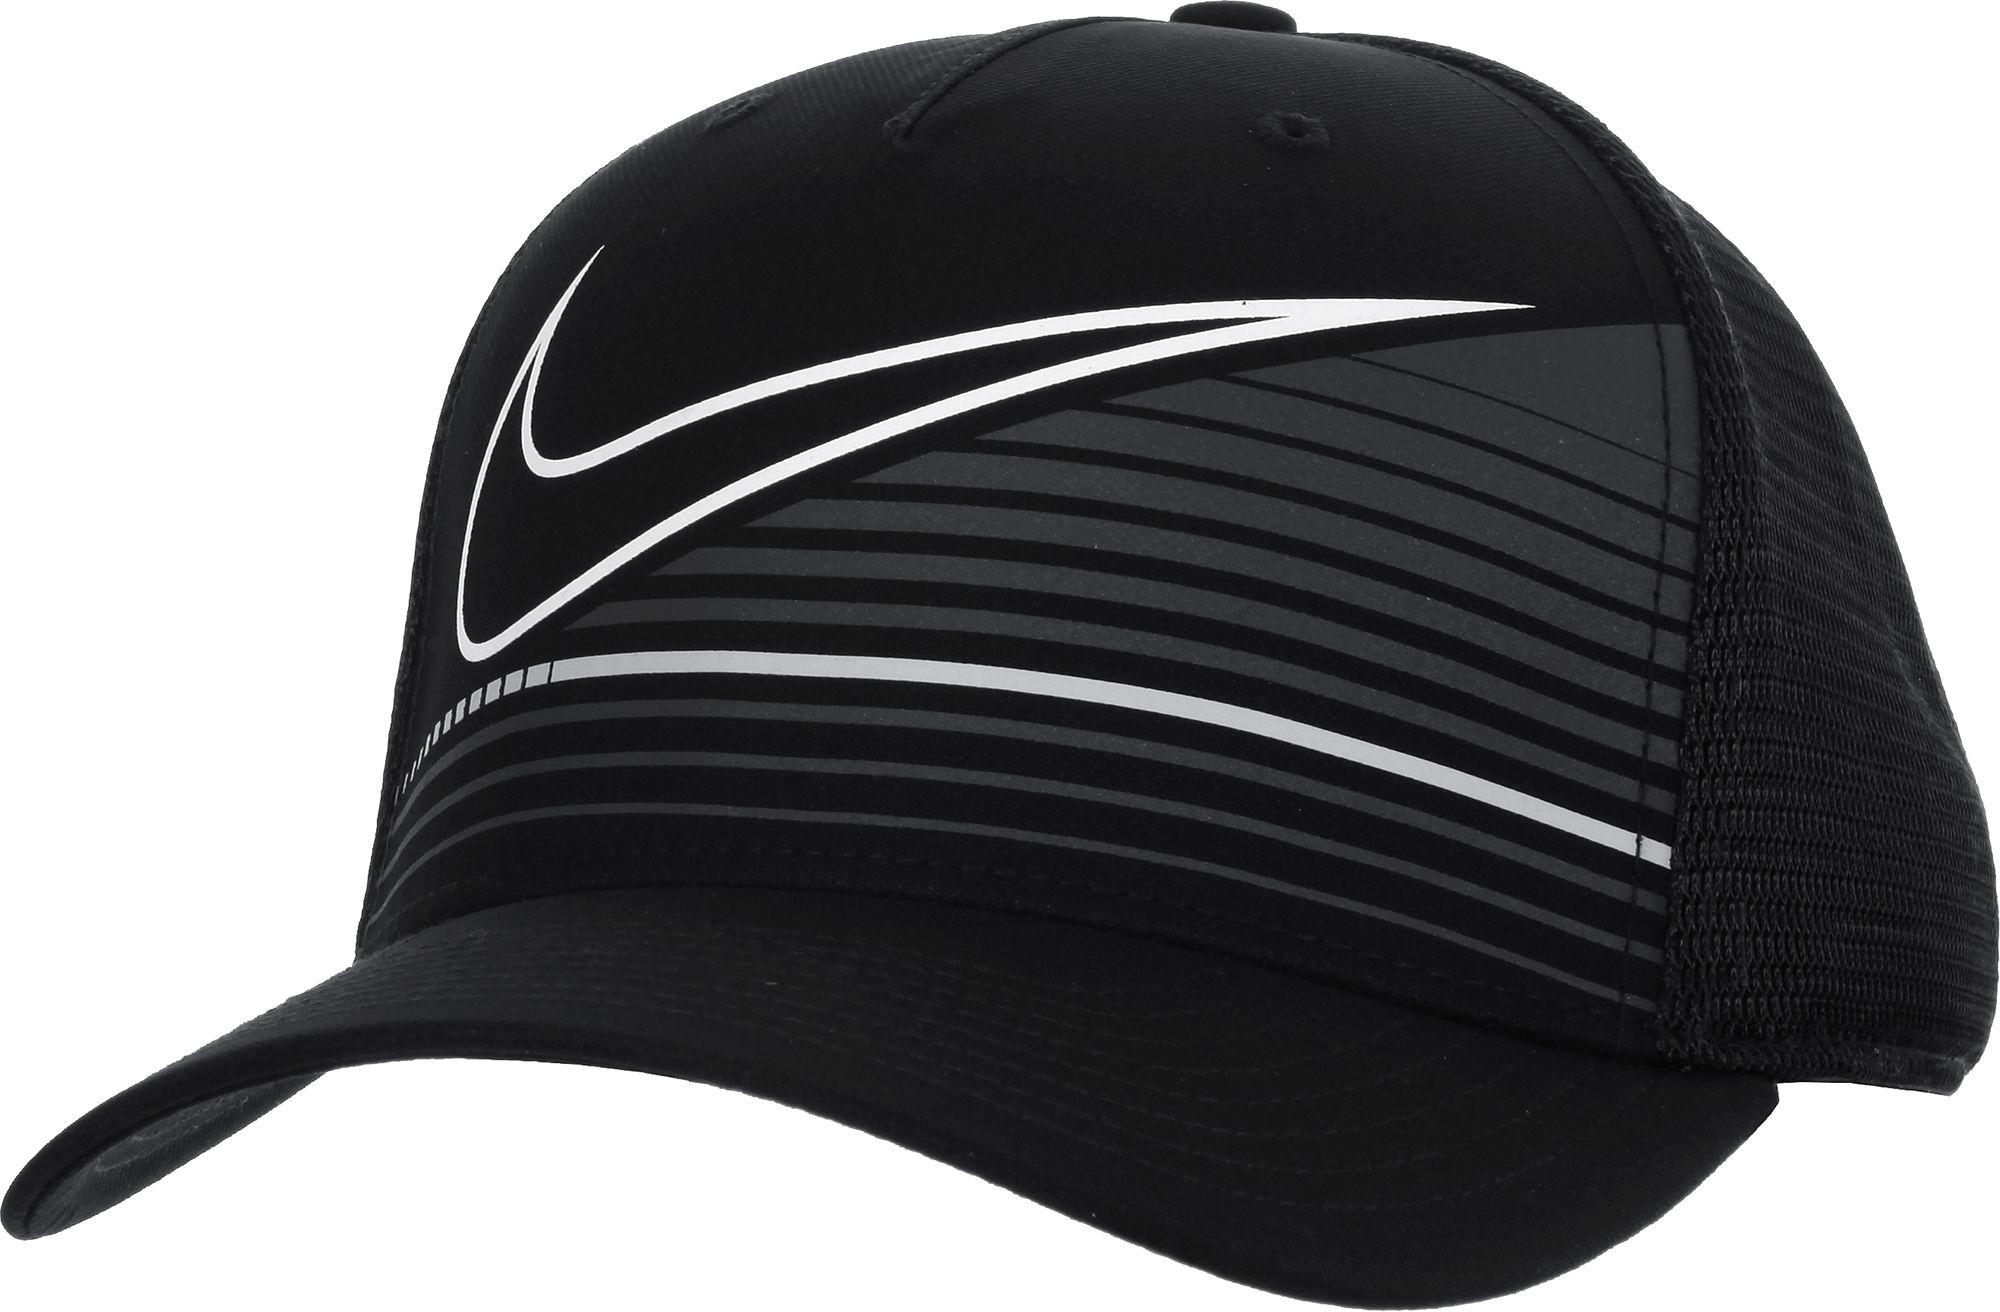 dfb4e32354bae Nike Classic99 Print Golf Hat in Black for Men - Lyst